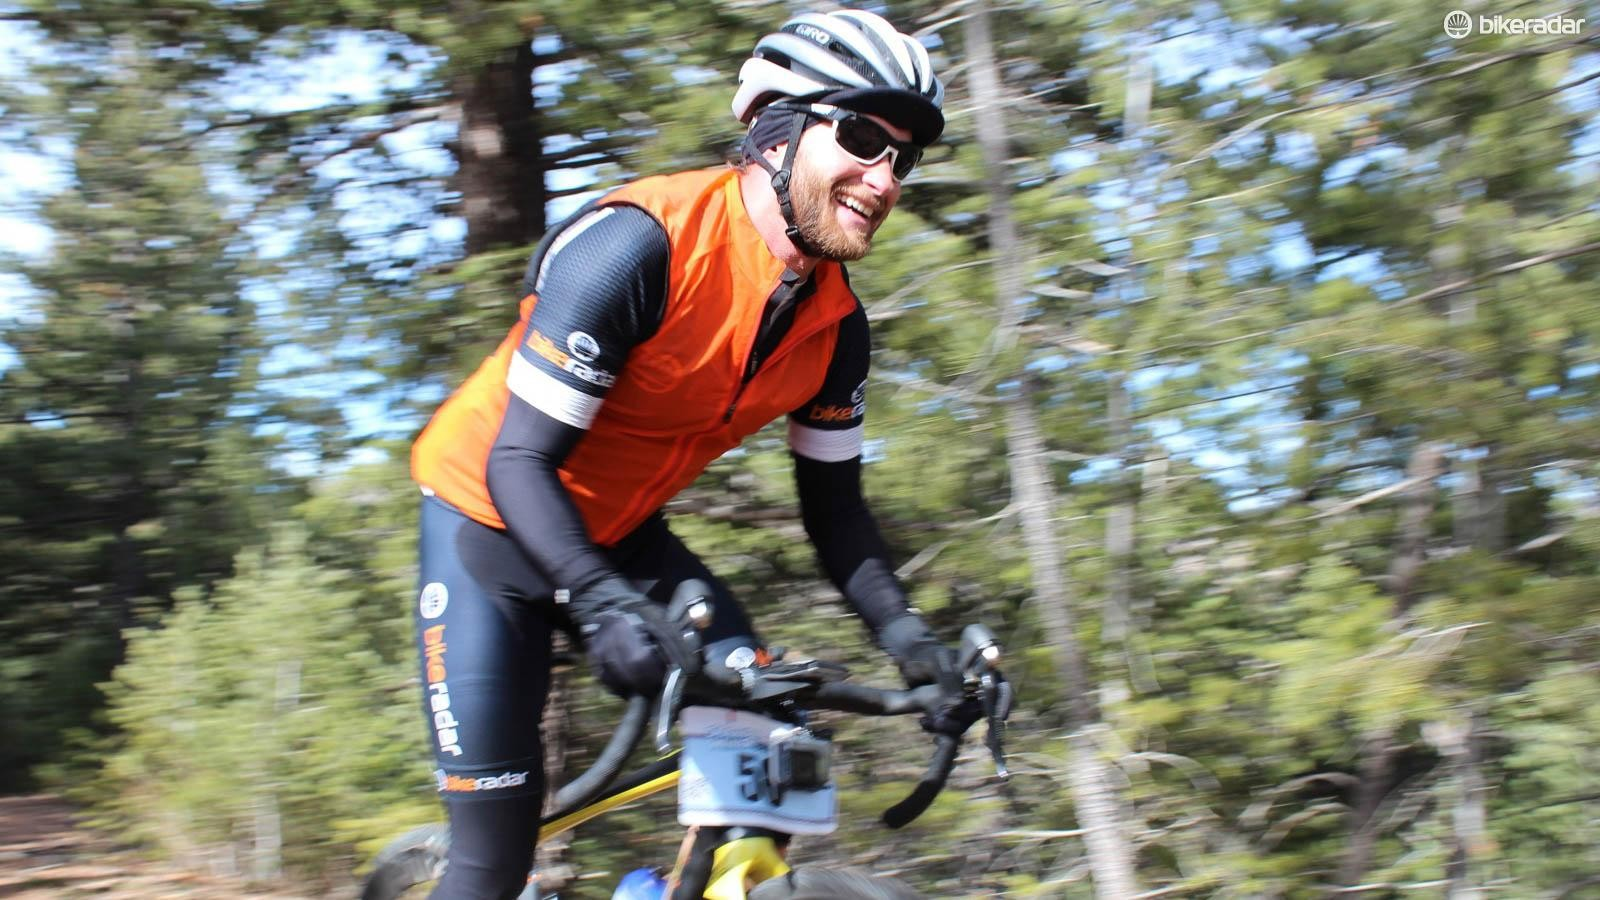 The singletrack section was Josh's favourite portion of the Old Man Winter Rally in Lyons, Colorado